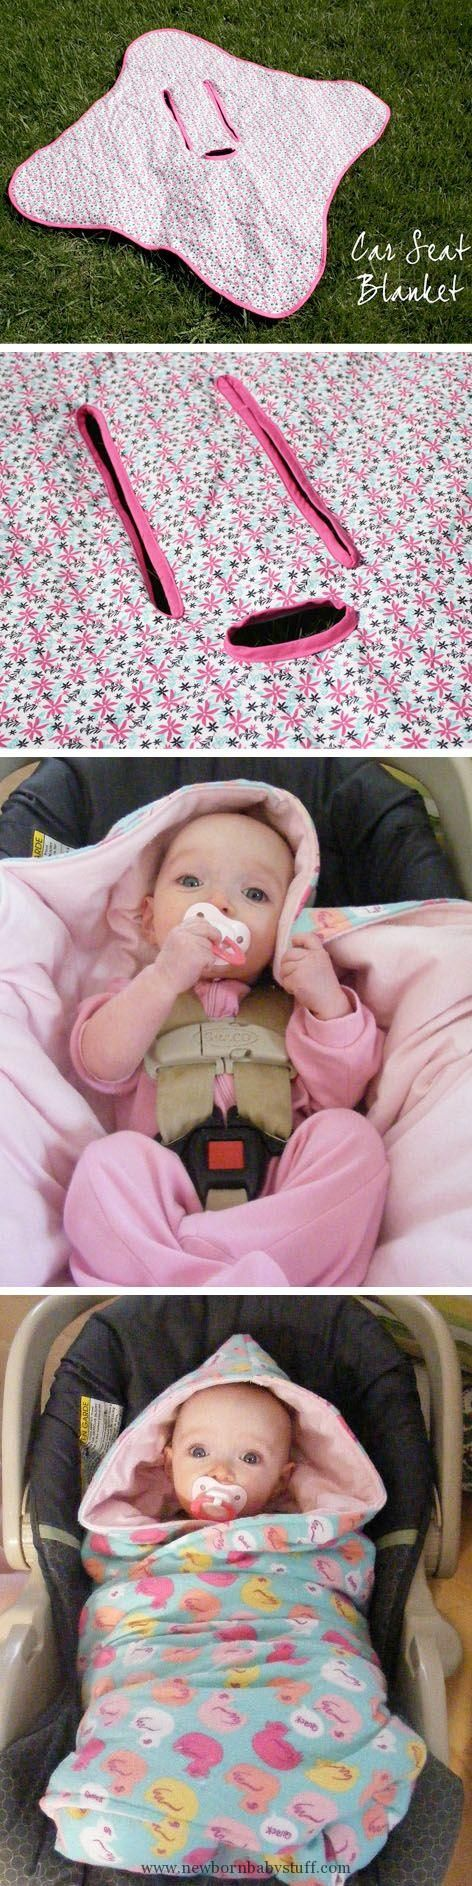 Baby Accessories DIY: Baby car seat blanket. Tutorials: www.imperfecthome... ...